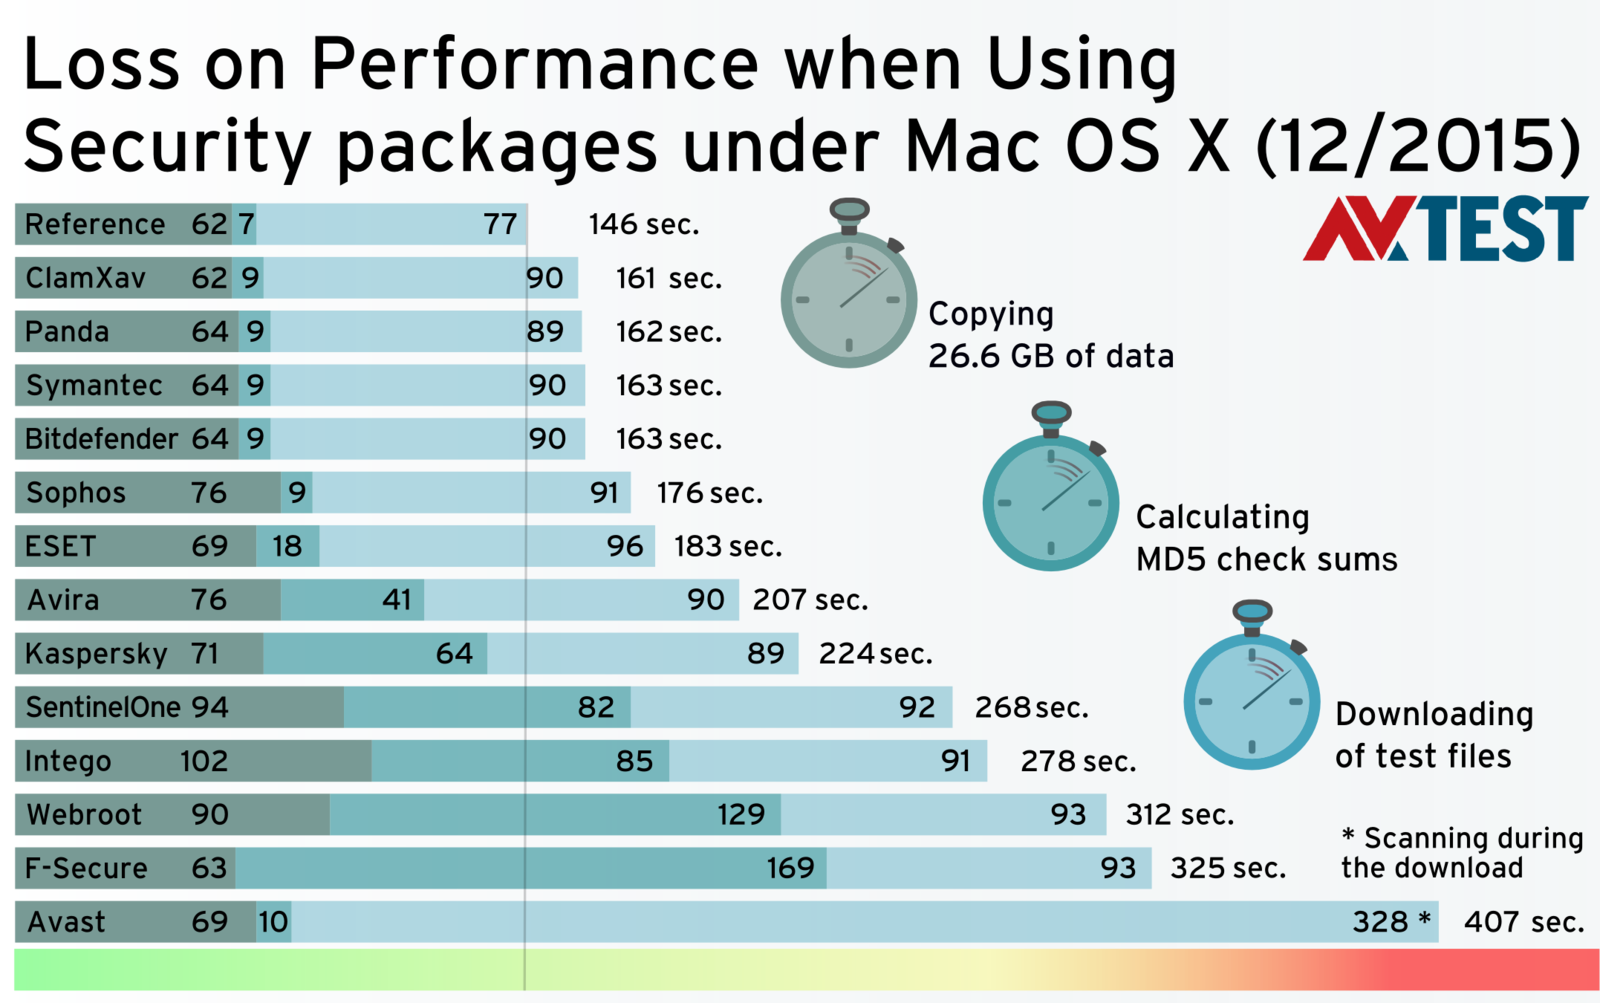 More Security for Mac OS X: 13 Security Packages Put to the